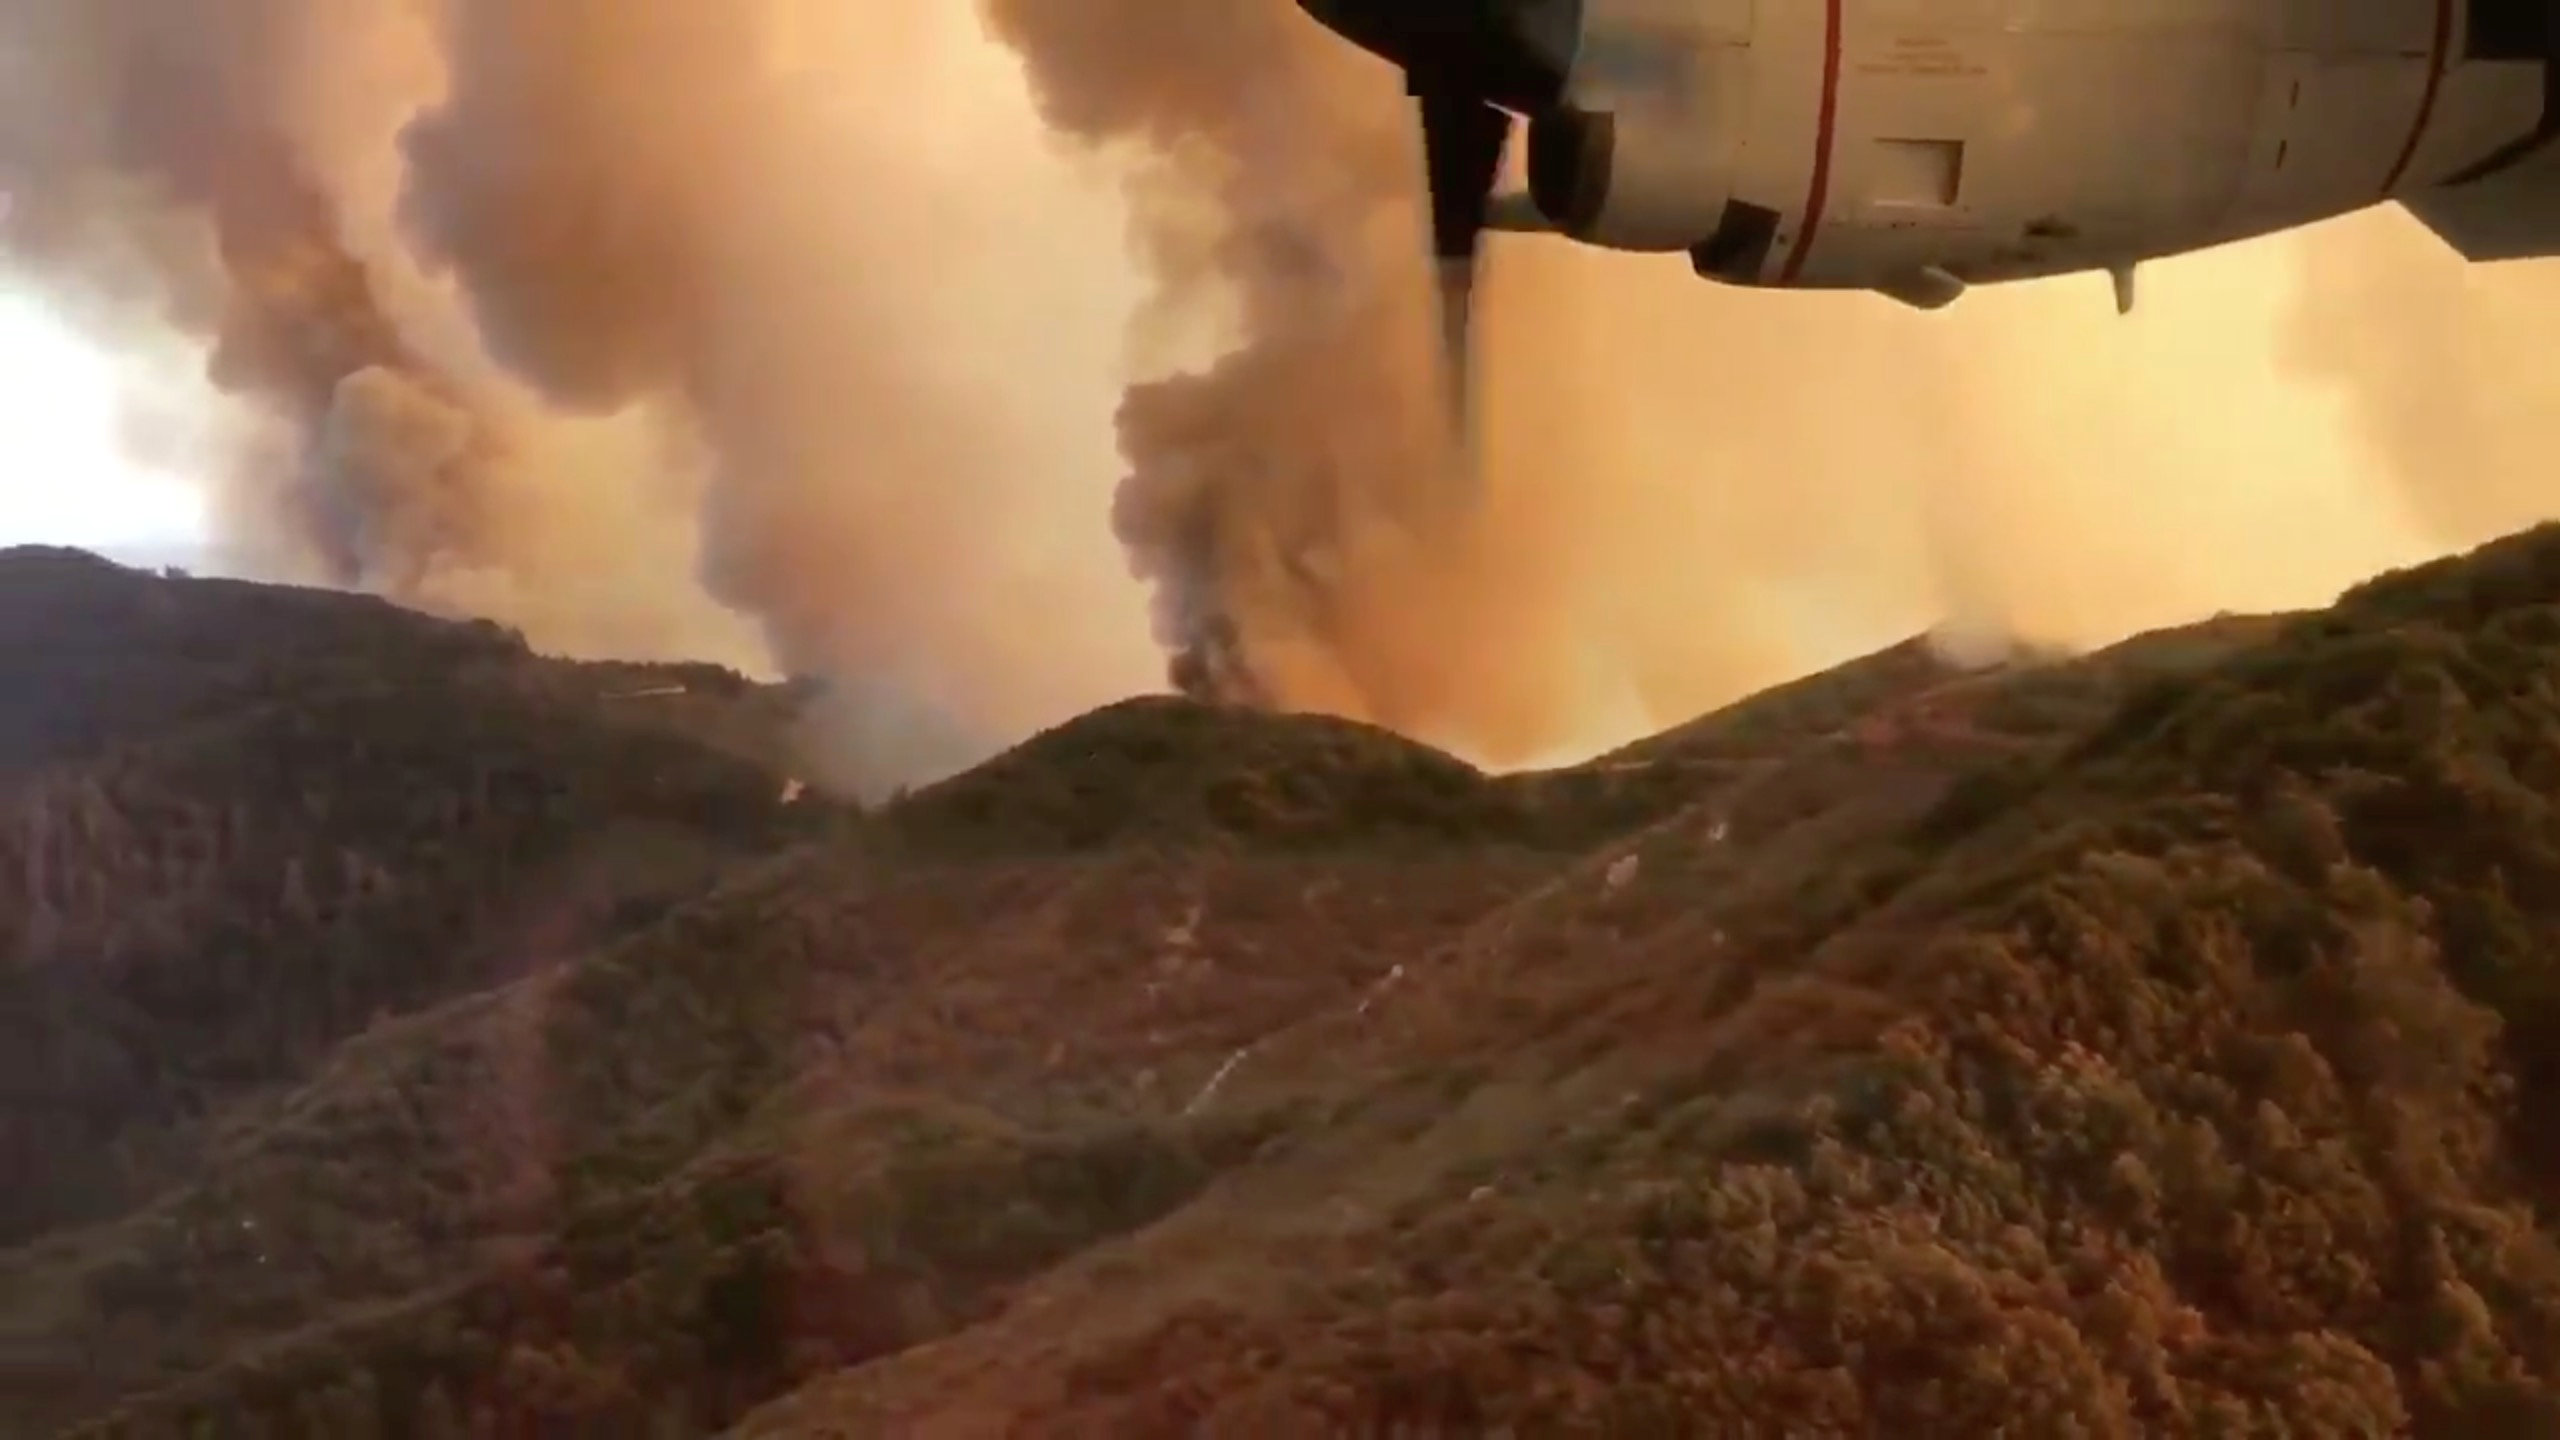 Aerial view of Trabuco Canyon as a tanker aircraft dumps load onto Holy Fire, Near Santiago Peak, California, U.S., August 6, 2018 in this still image taken from a video obtained from social media. TWITTER / @ZULUJUMPER/via REUTERS